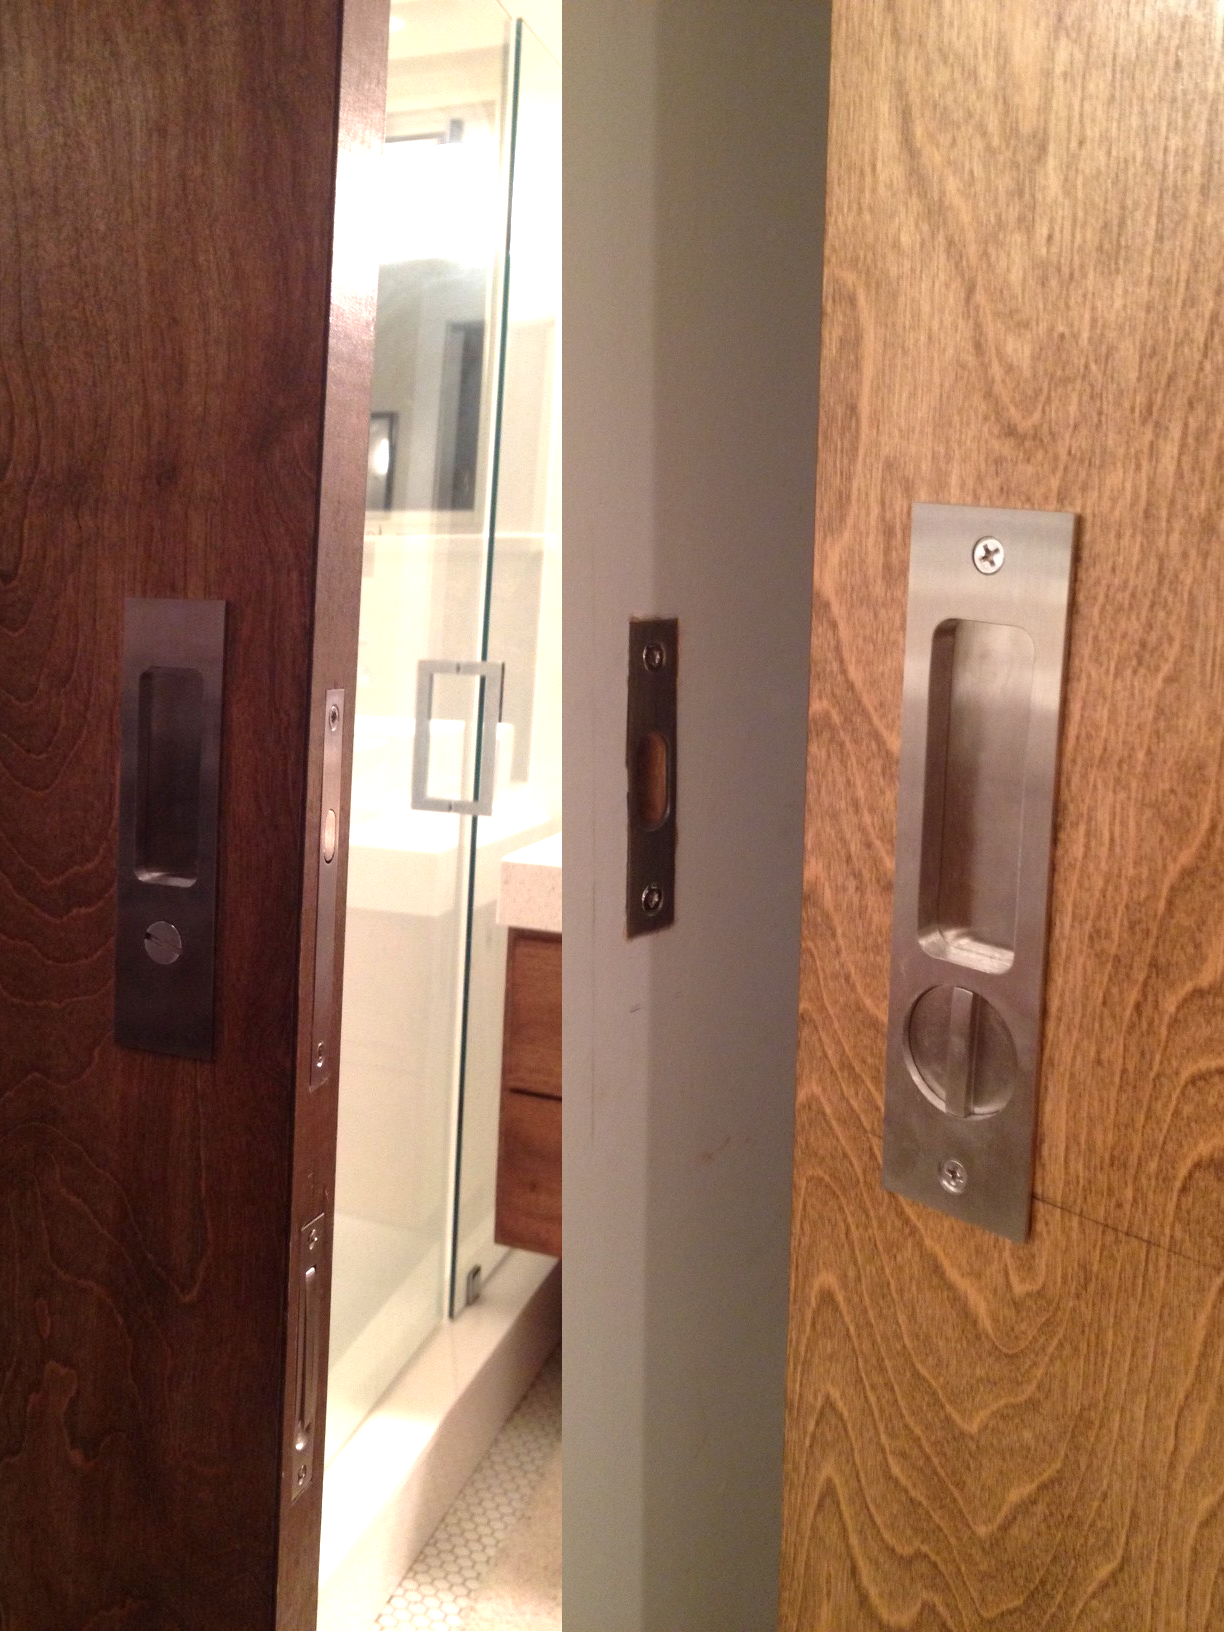 Linnea PL160 Pocket Door Lock Installation Step 15